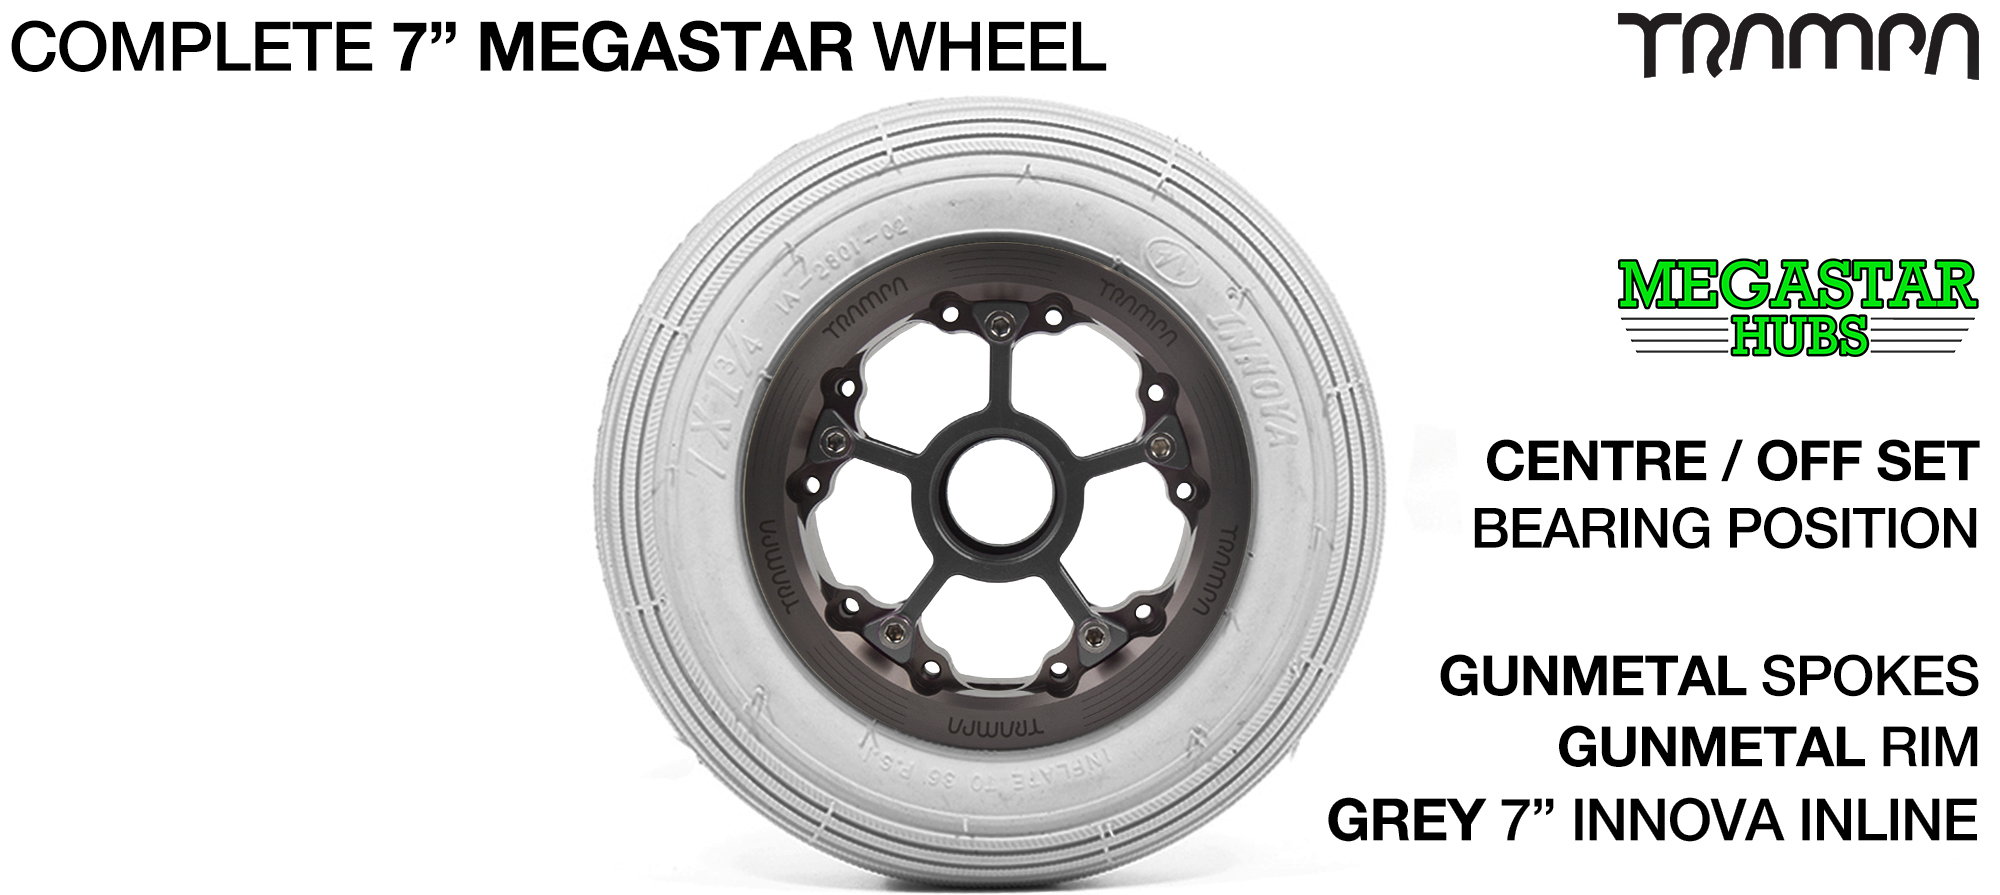 SILVER MEGASTAR Rims with RED Spokes & 7 Inch Tyres